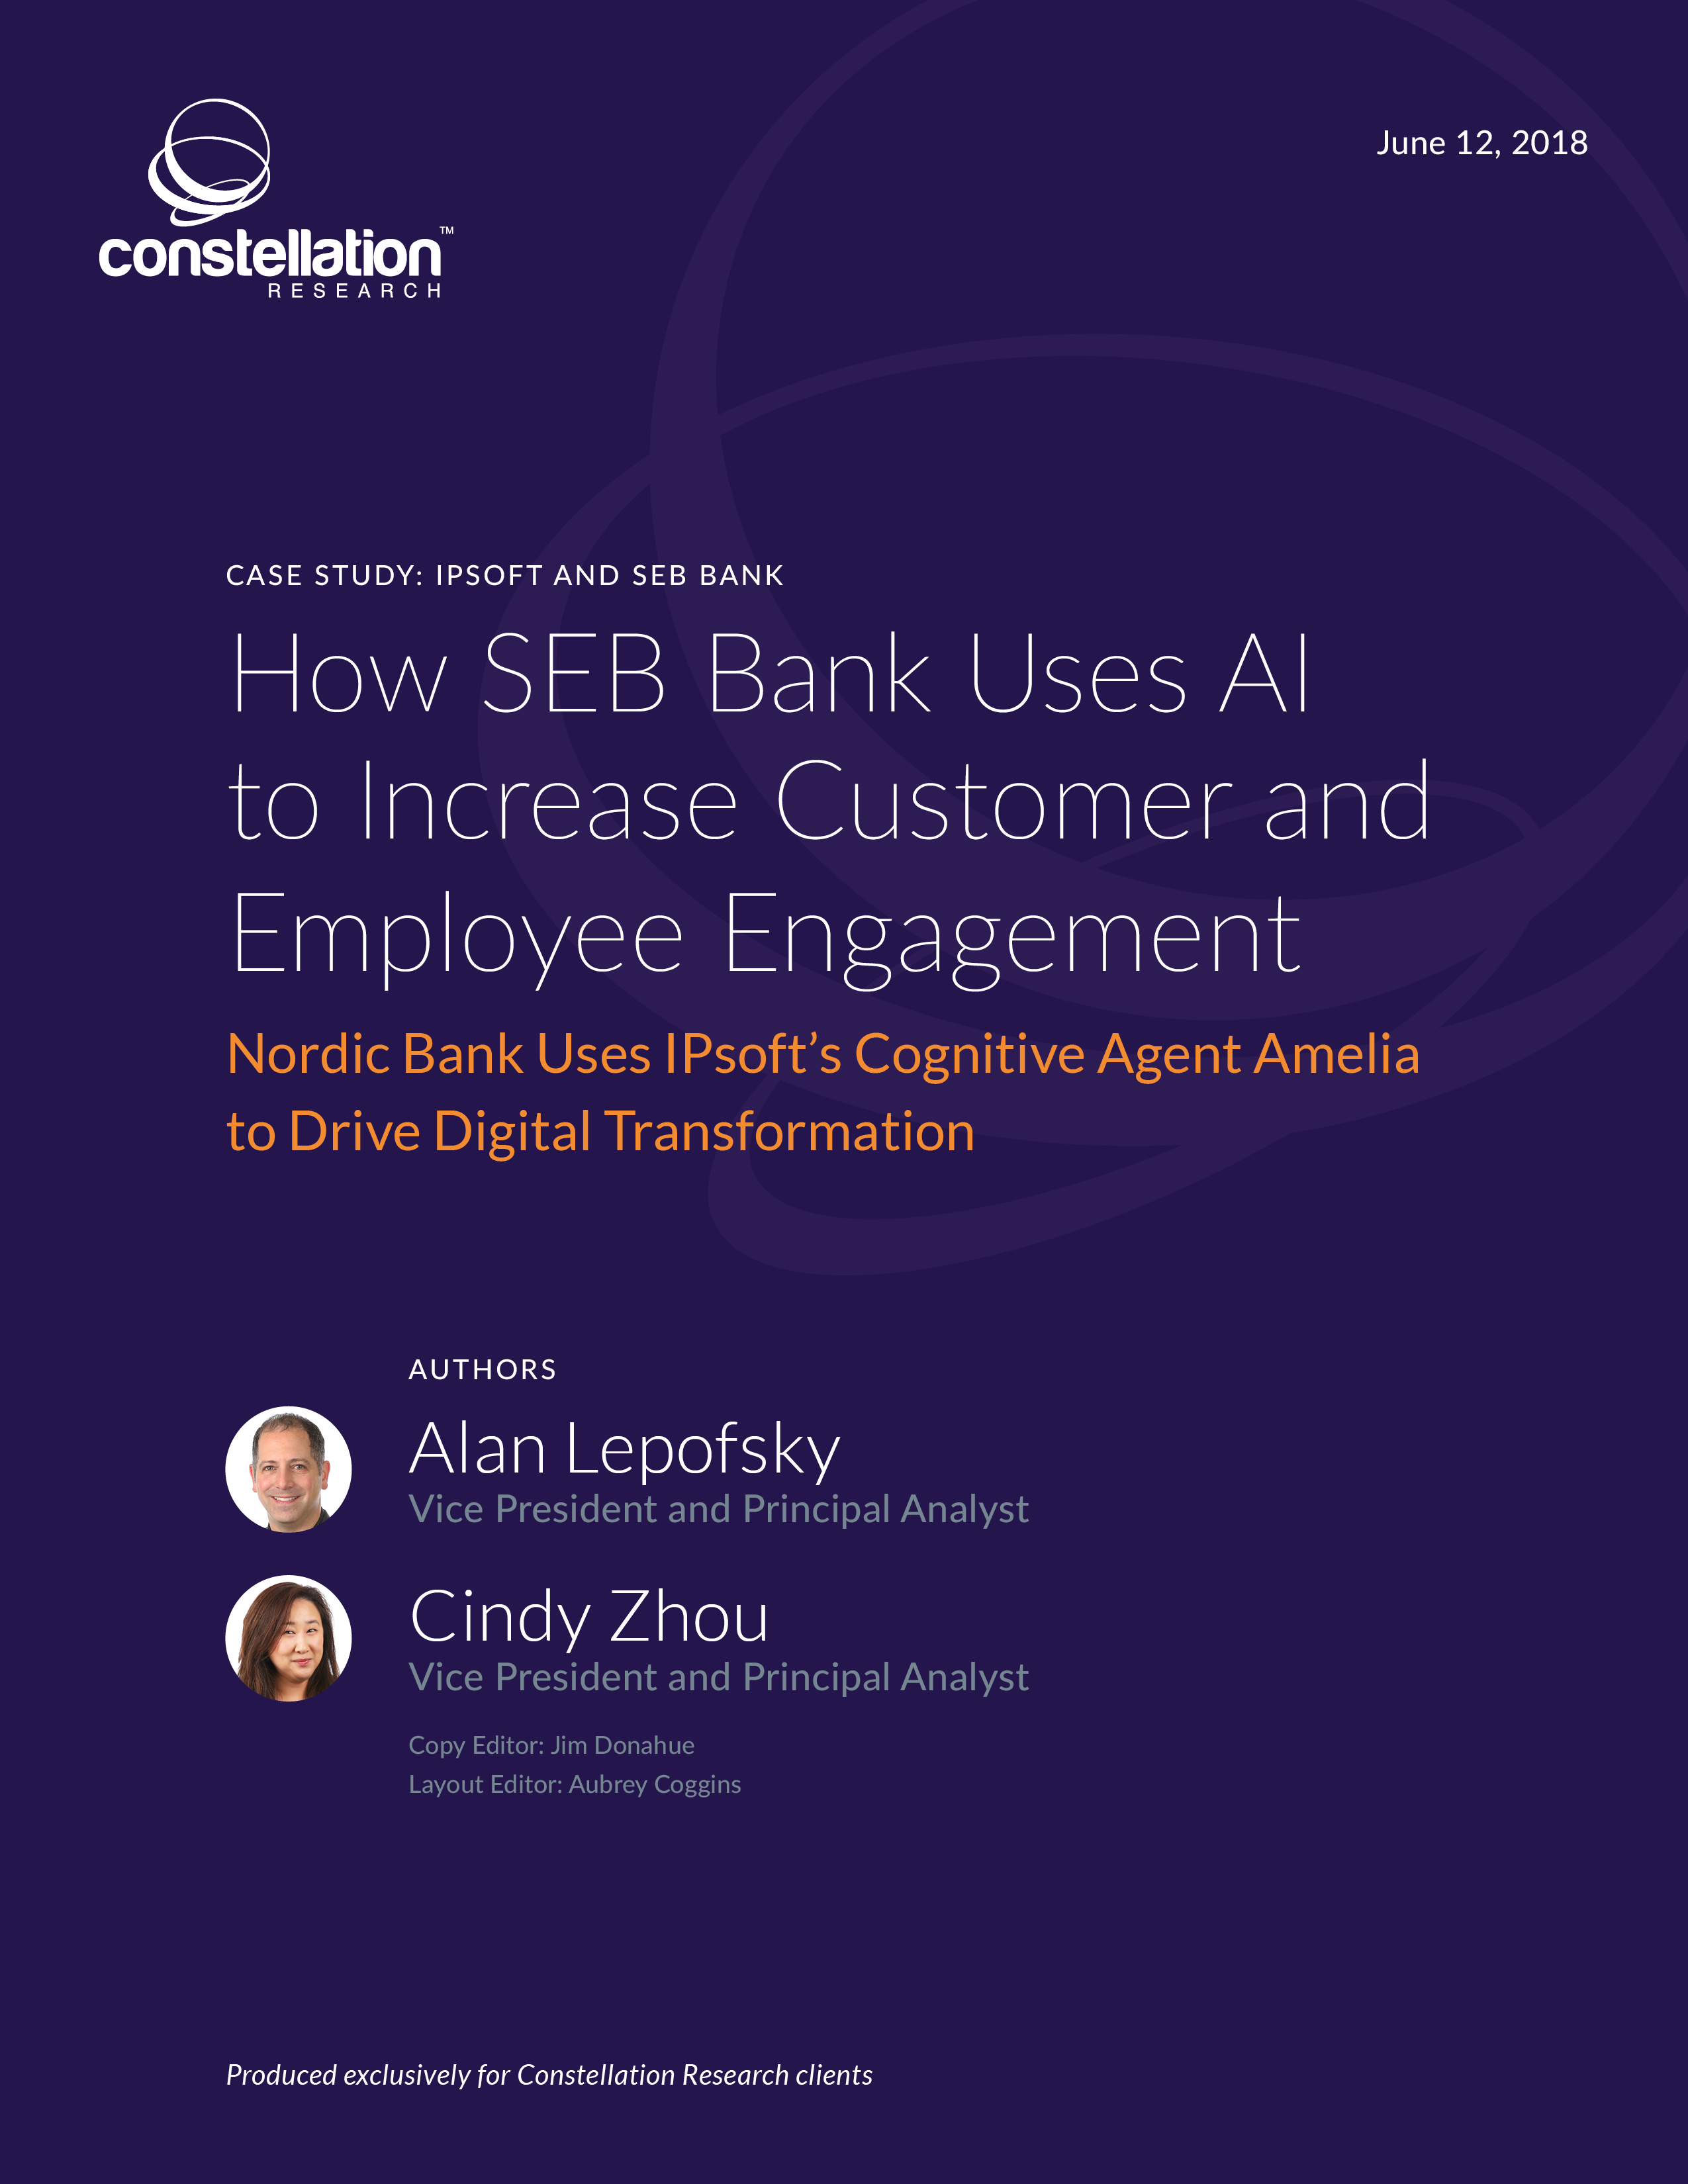 How SEB Bank Uses AI to Increase Customer and Employee Engagement